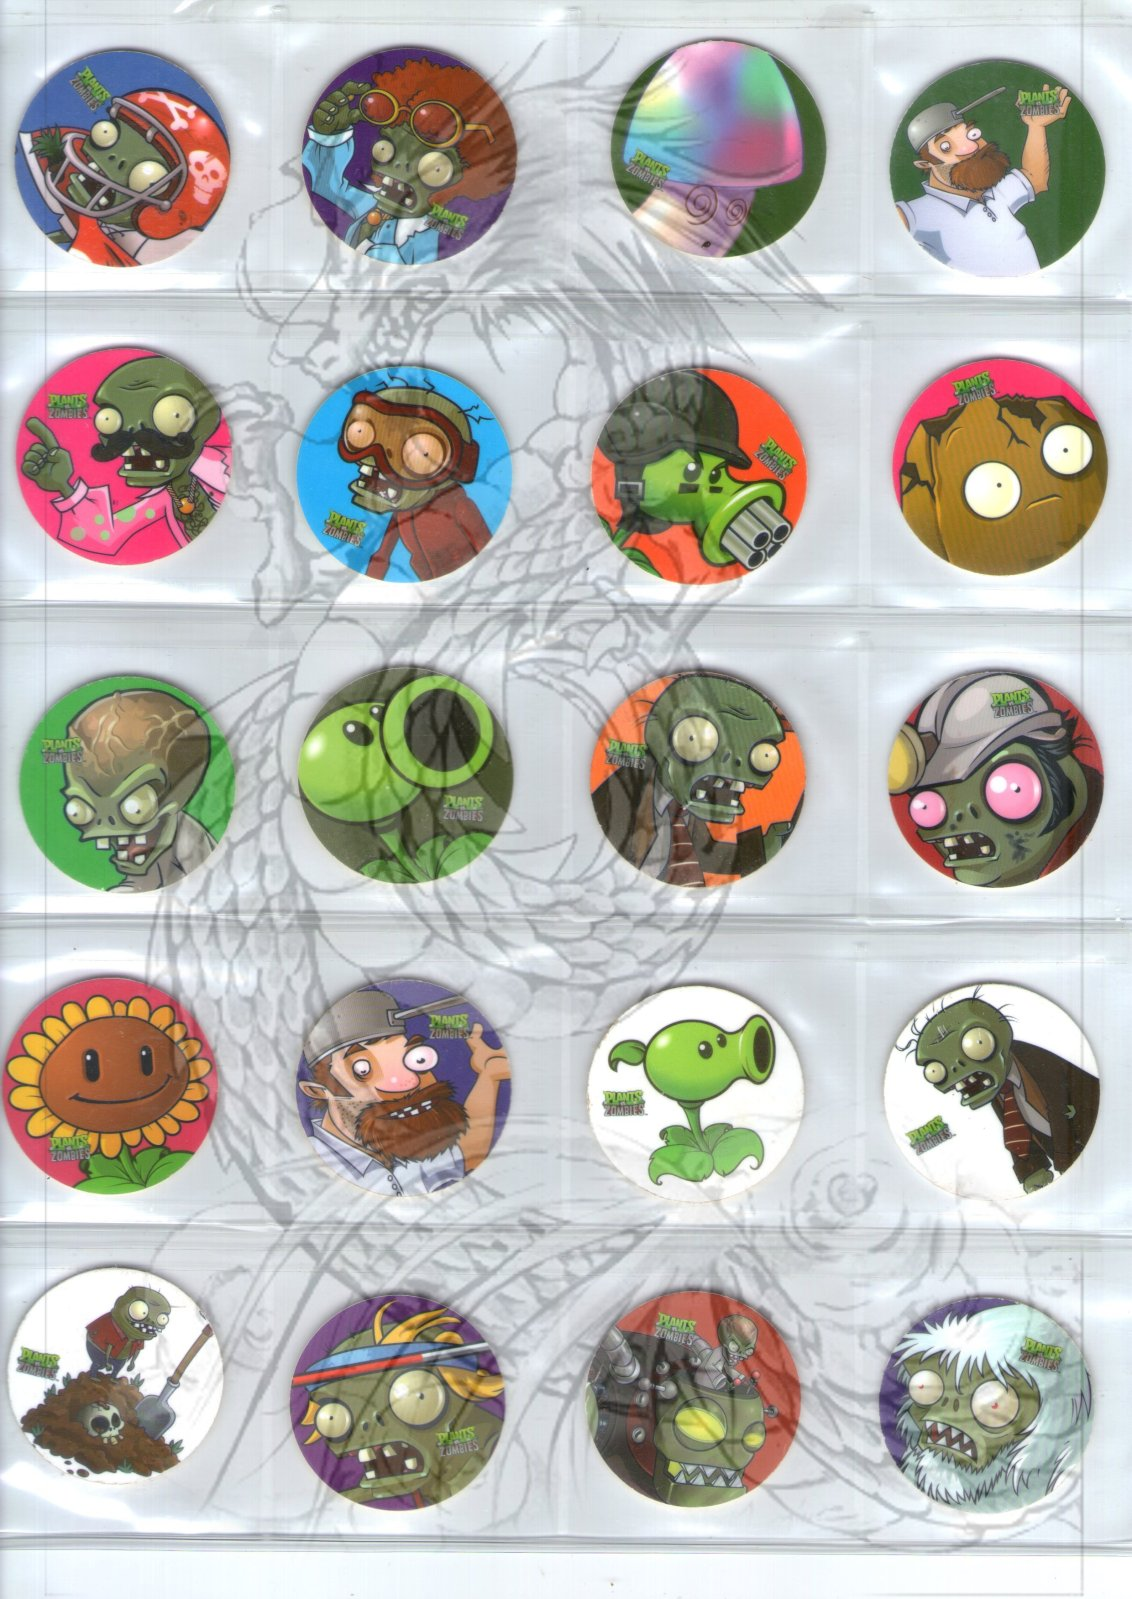 Tazos Plantas Vs Zombies de SABRITAS 357kebs